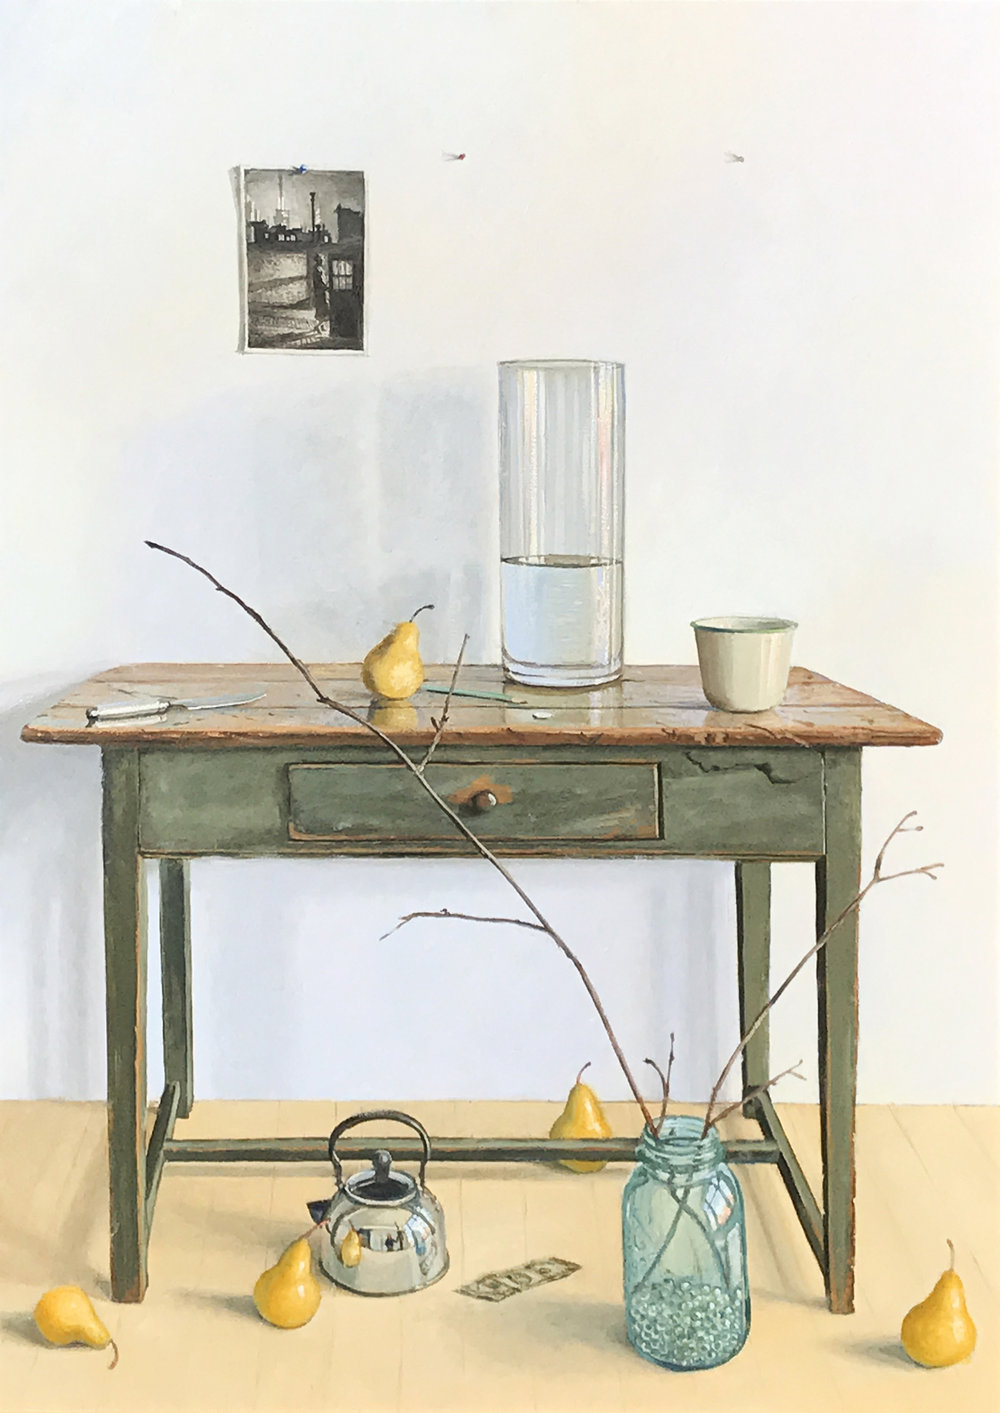 Eric Forstmann. Deconstructed Still Life, 2017. Oil on board, 28 1/2 x 20 1/2 in.